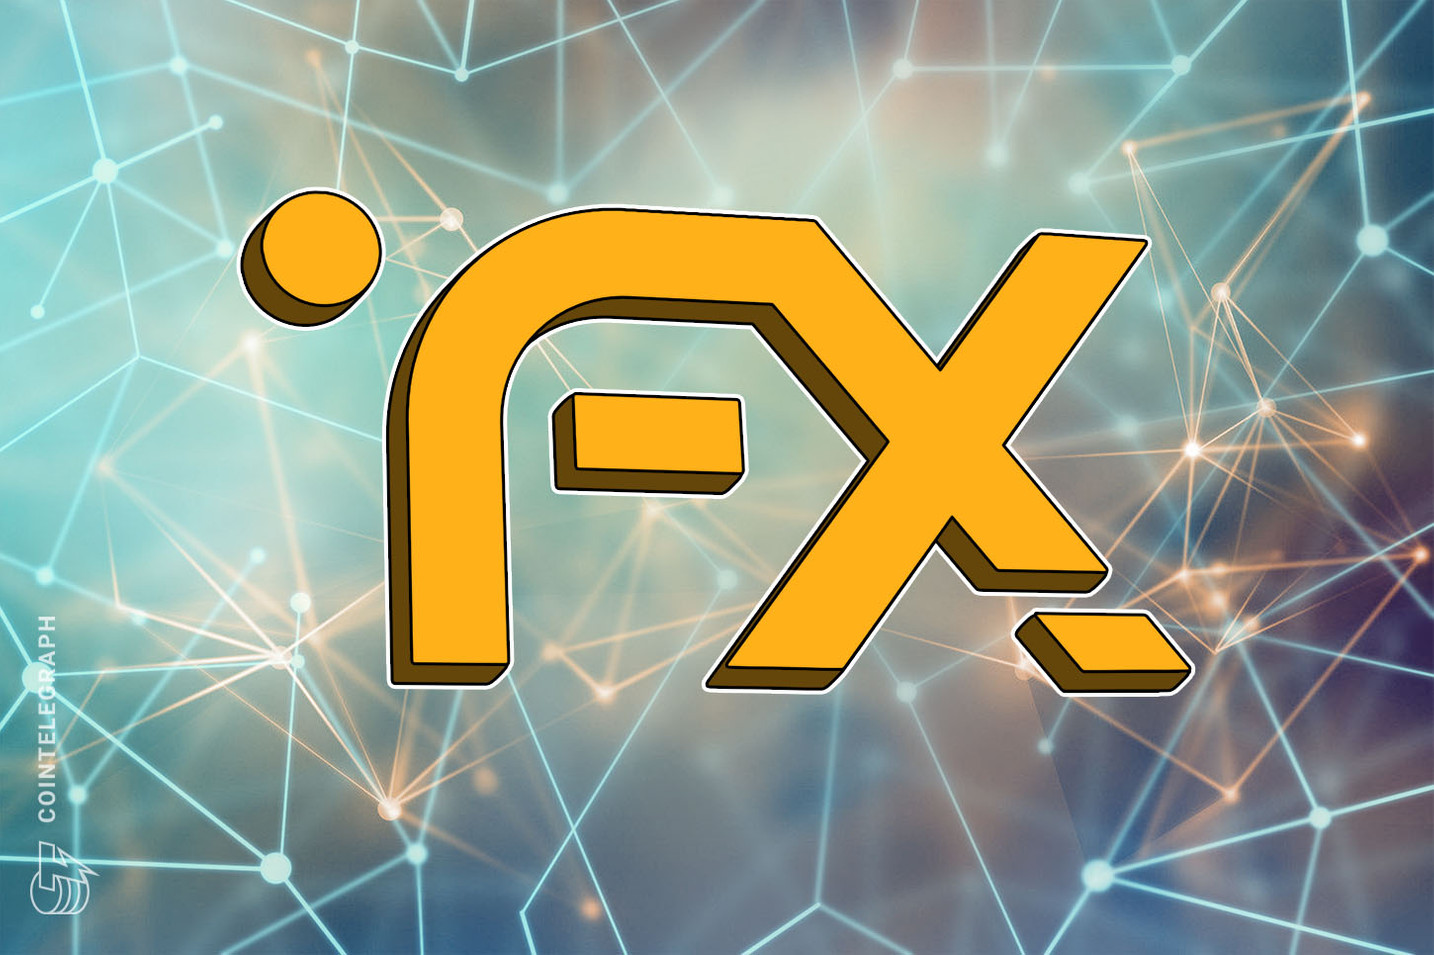 YFX, the DEX that offers 100x trading leverage on perpetual contracts